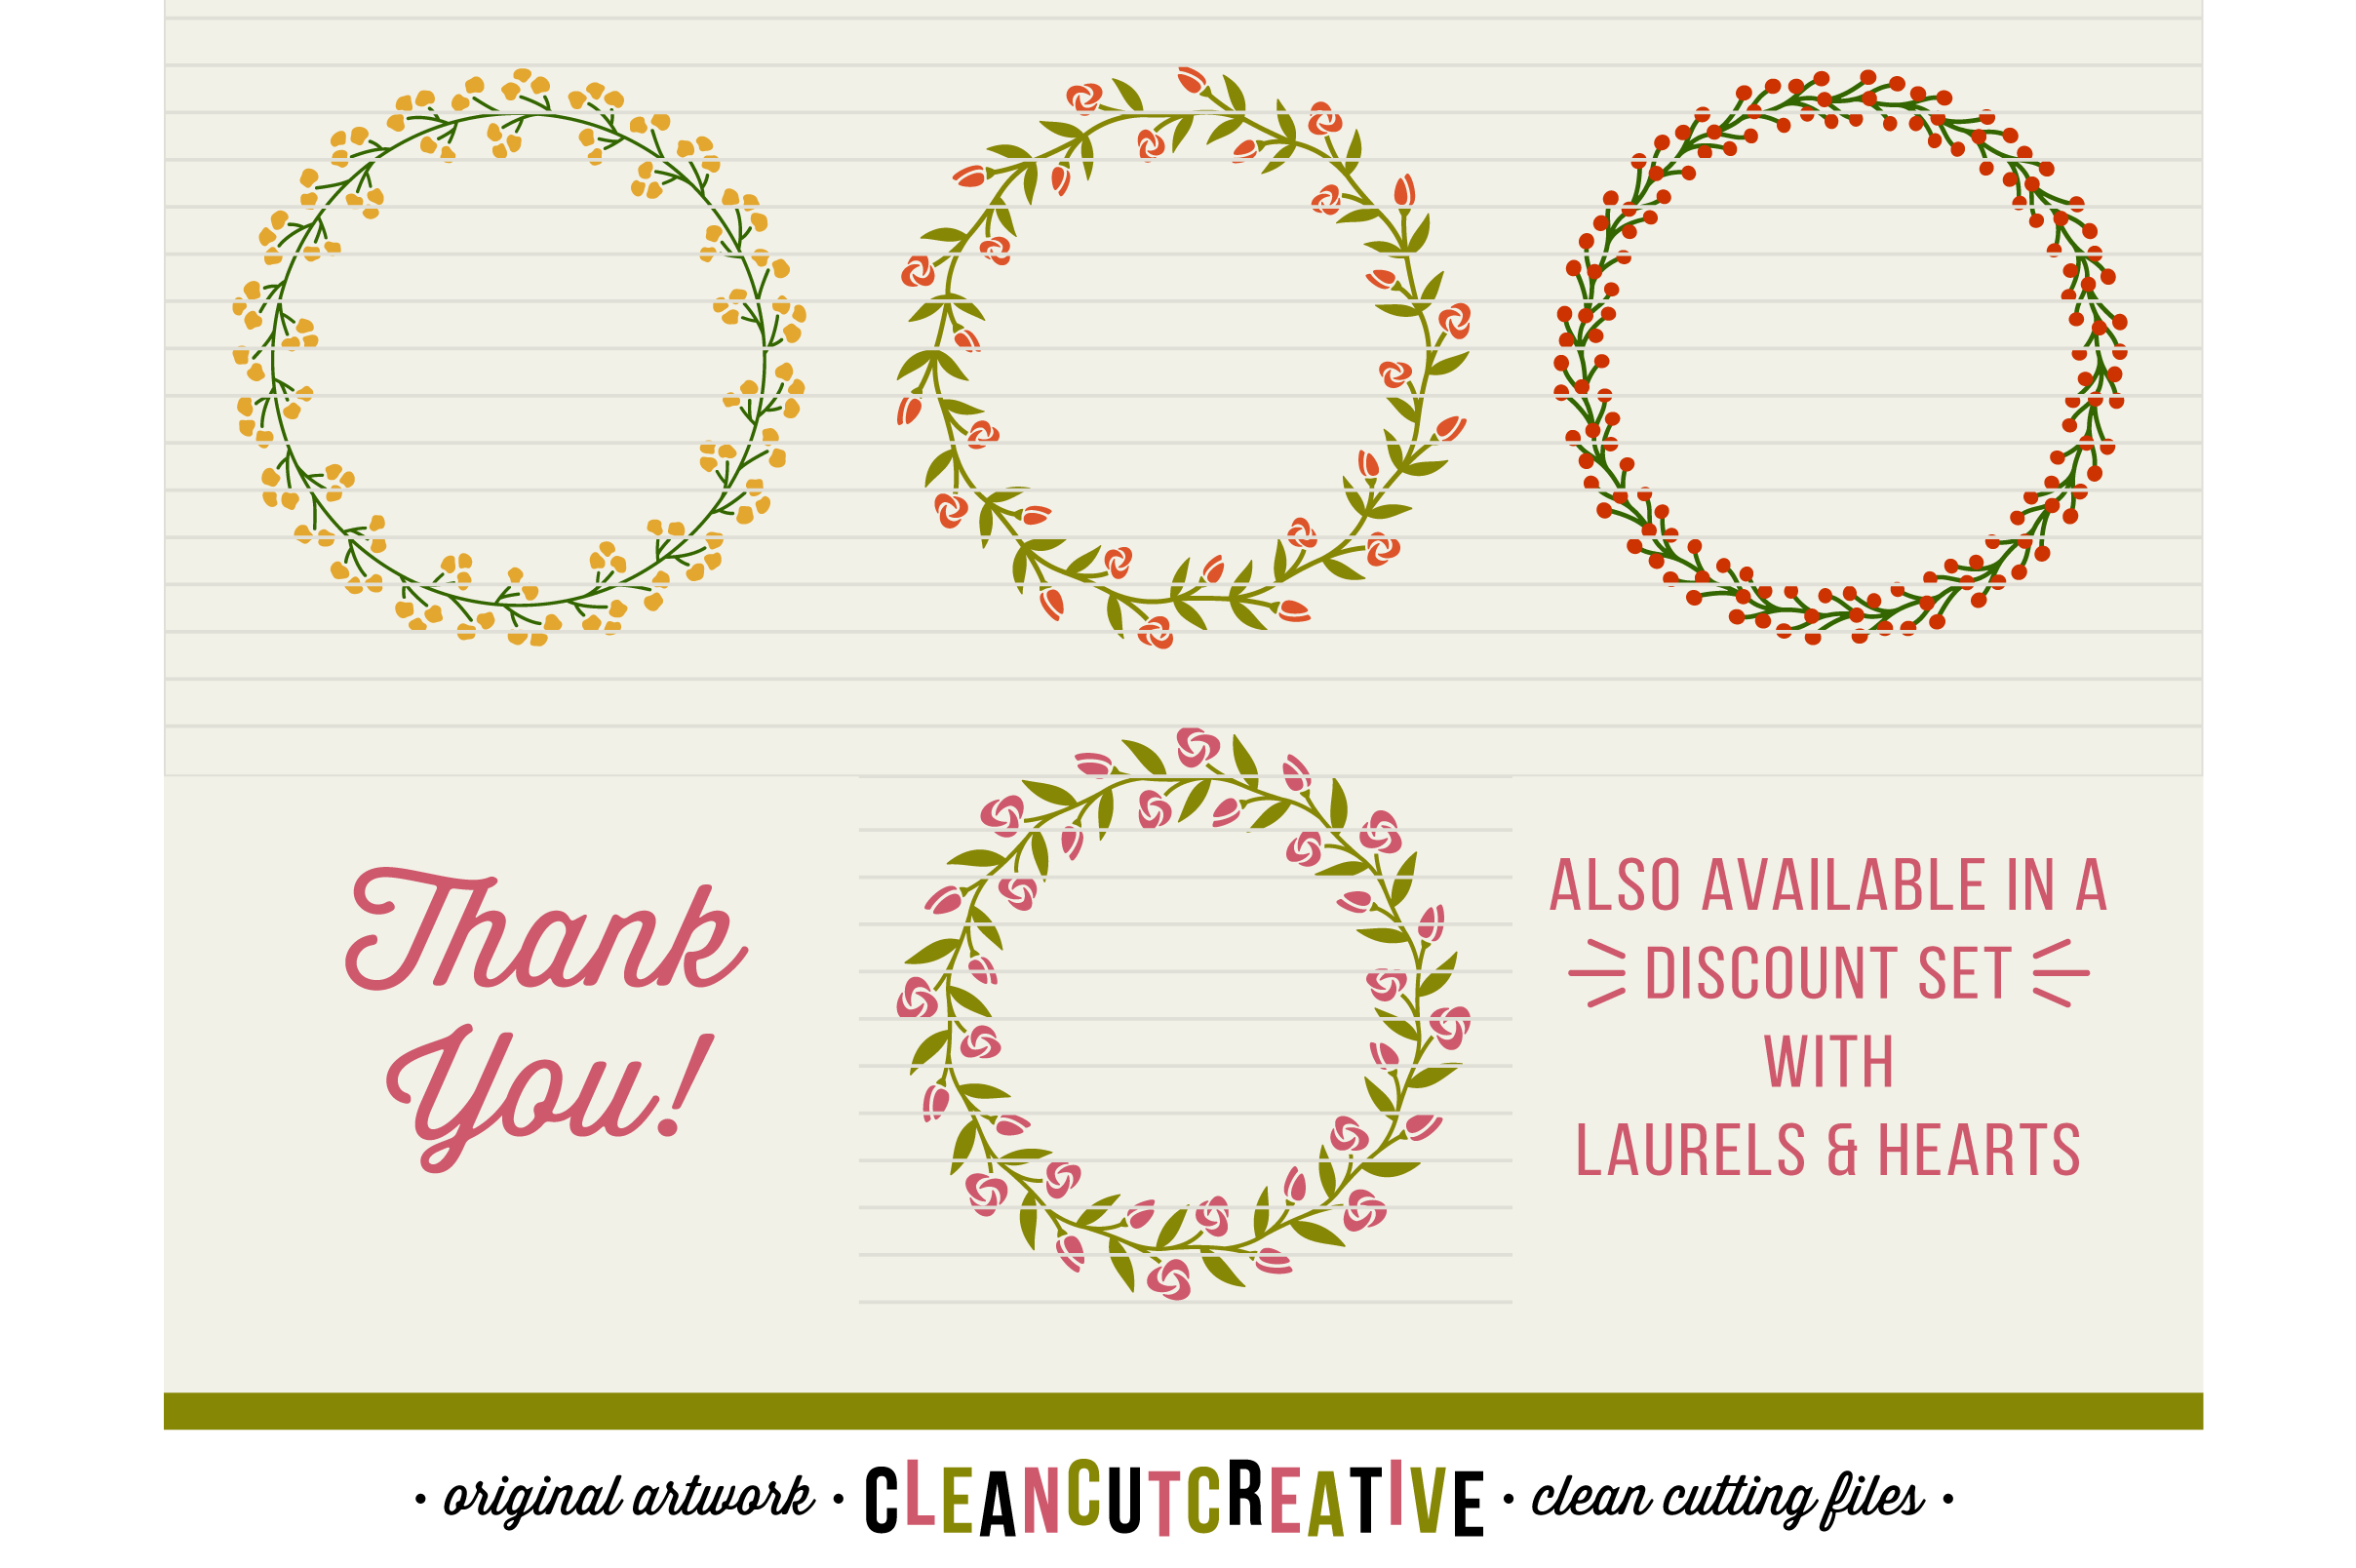 FLORAL MEGA BUNDLE 30 wreaths, laurels and hearts leaf frames - SVG DXF EPS PNG - for Cricut and Silhouette Cameo - clean cutting digital files example image 4